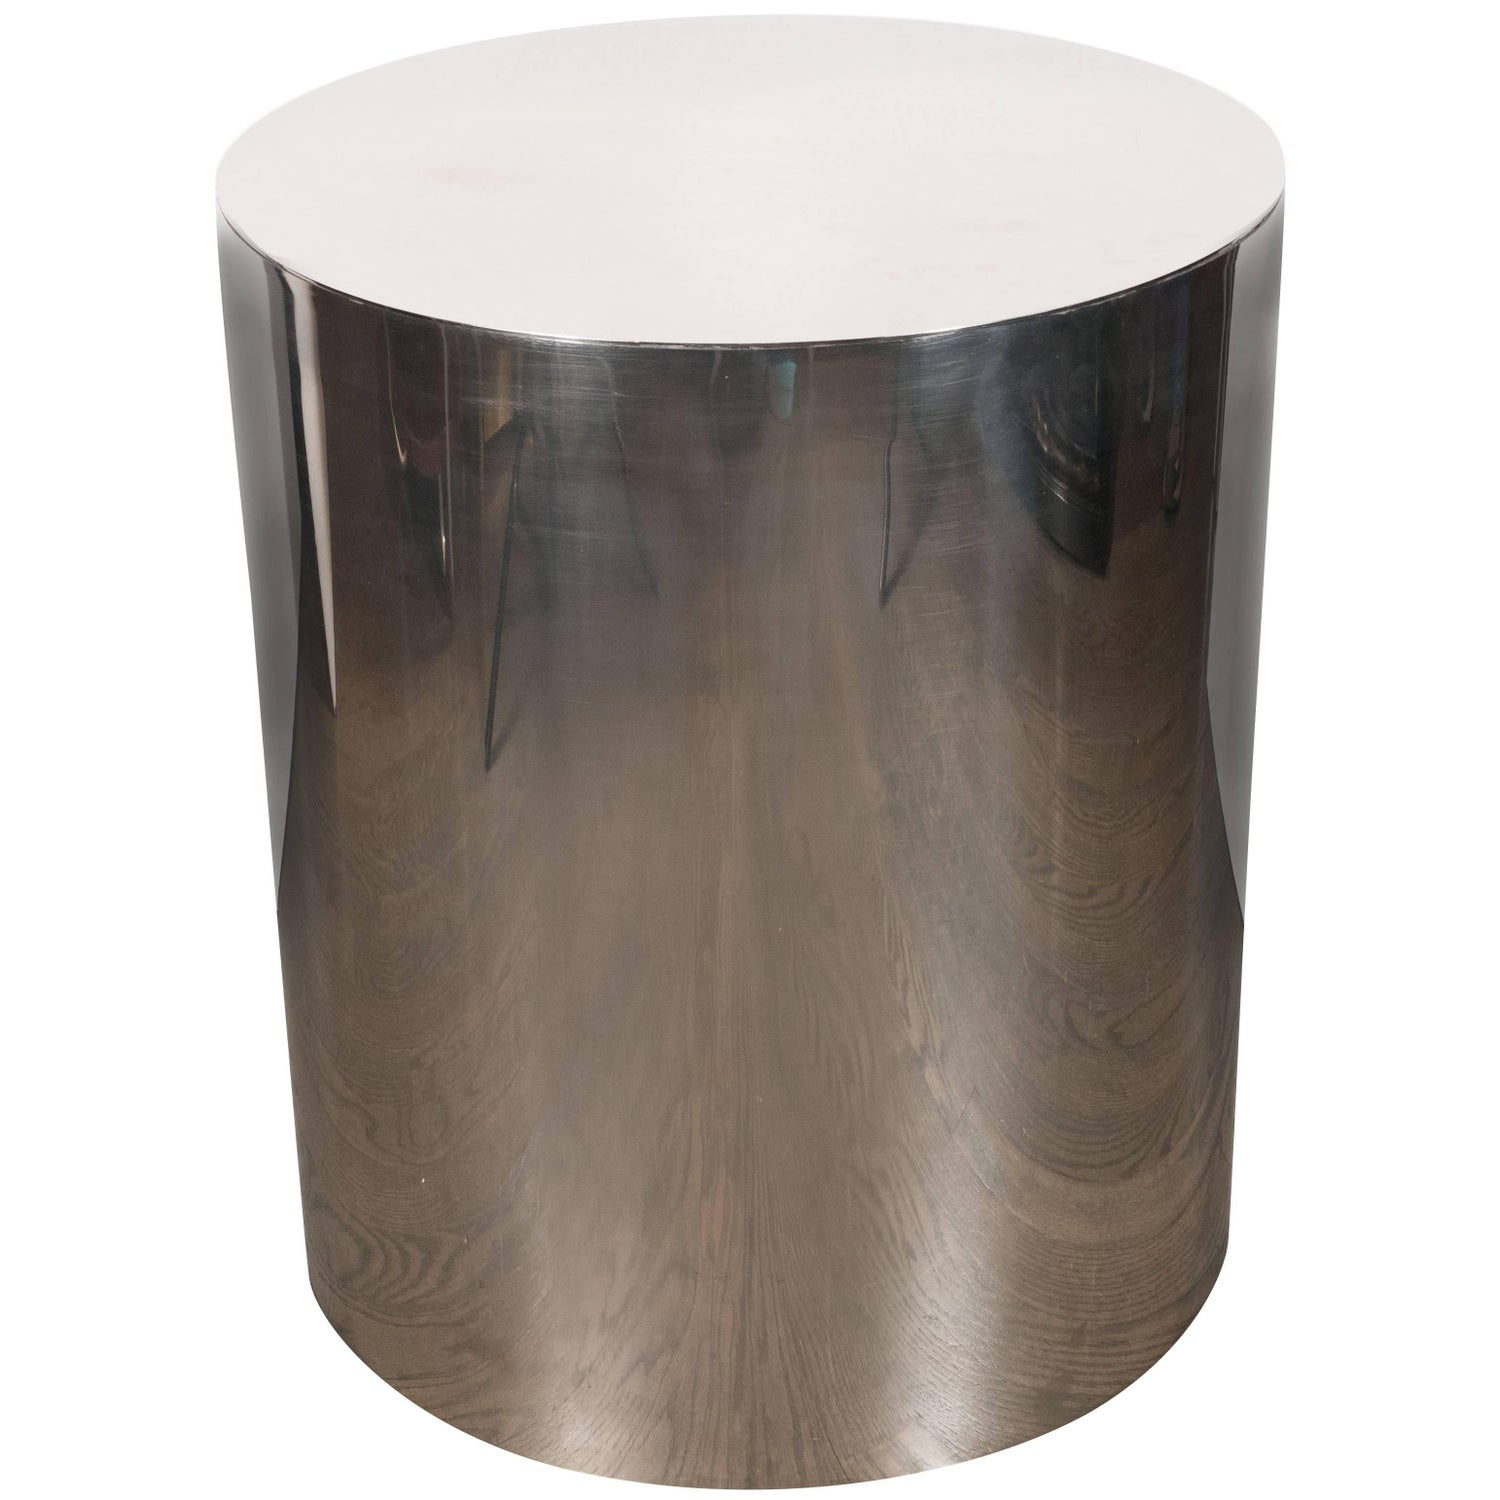 American mid century modern cylindrical chrome side table or american mid century modern cylindrical chrome side table or pedestal for sale at 1stdibs geotapseo Image collections